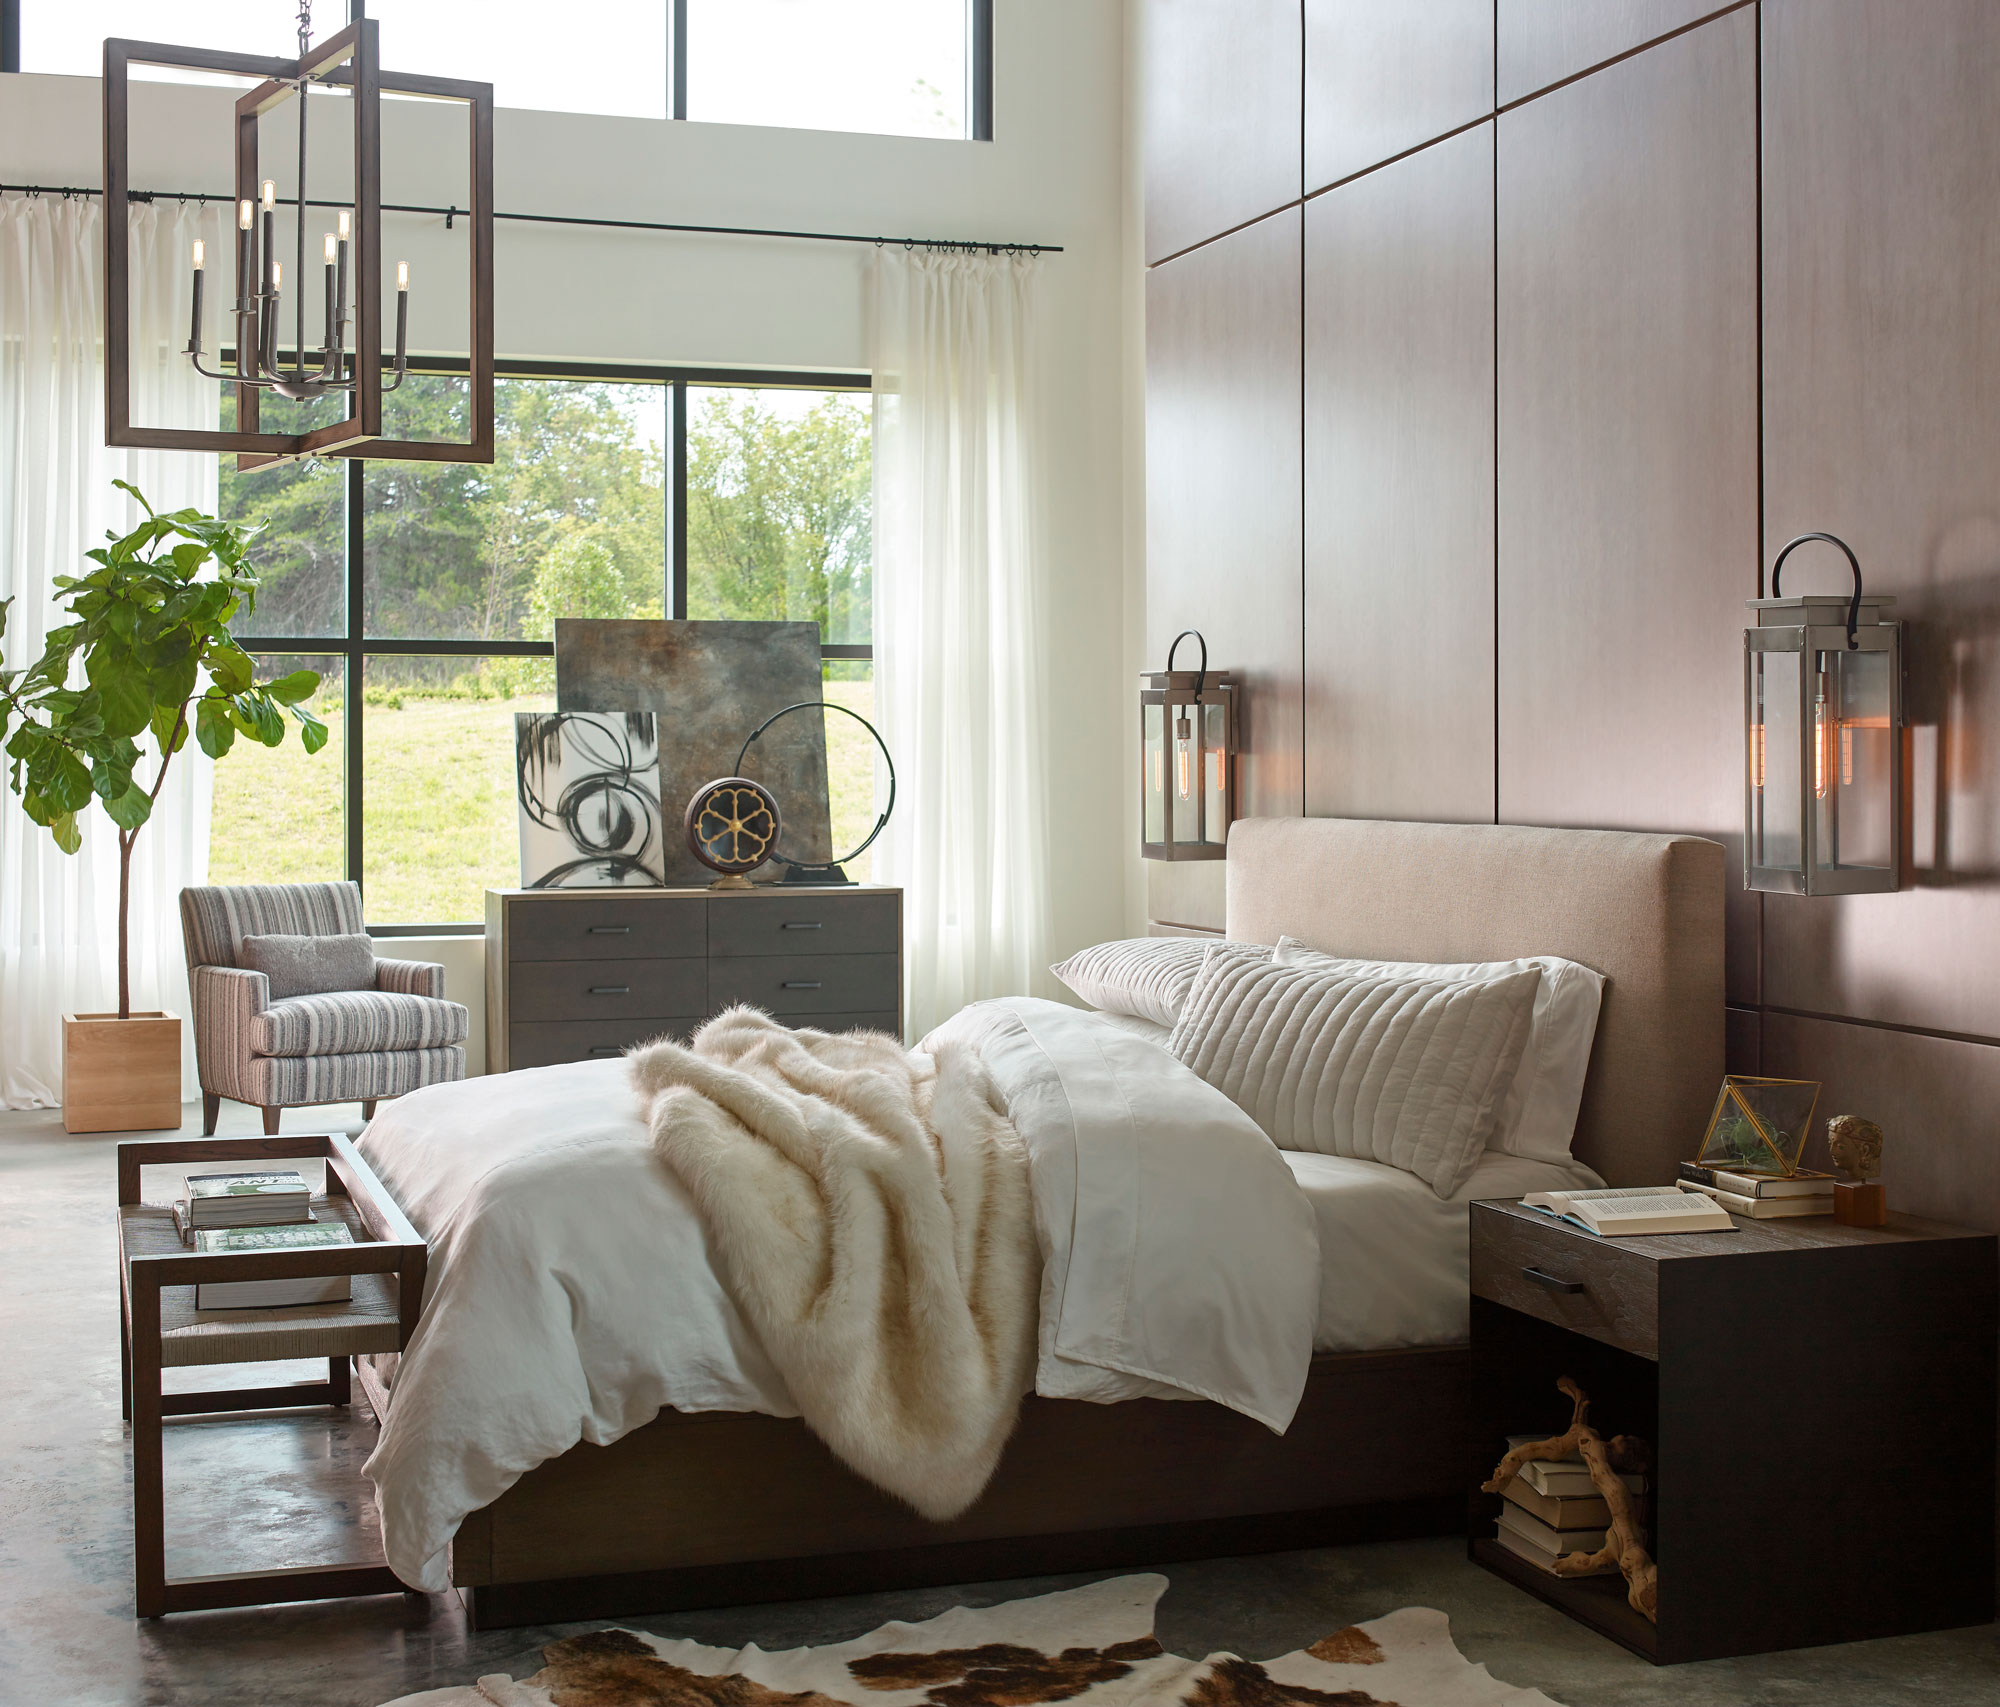 neutral tones cozy bedroom with mounted sconces